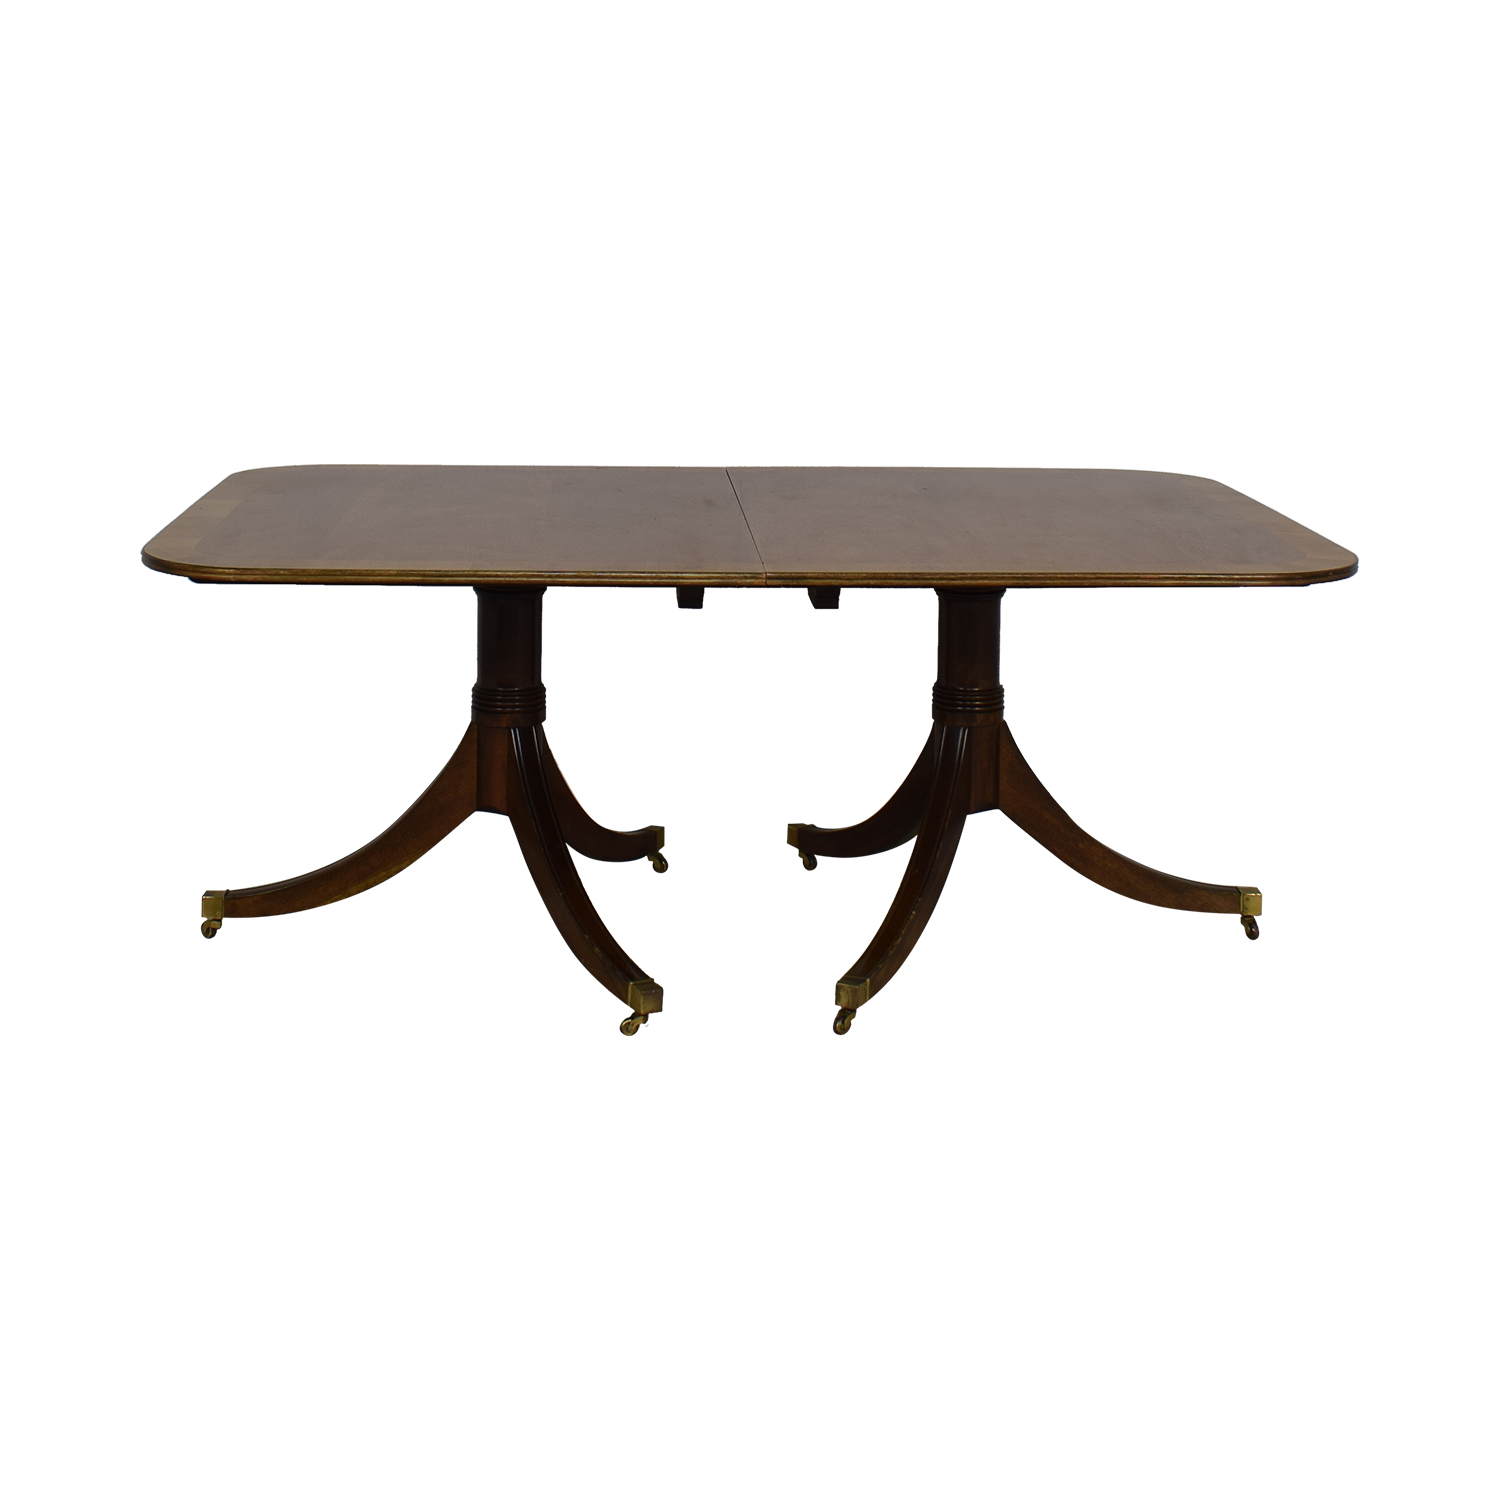 Lockson Lockson English Dining Table Tables